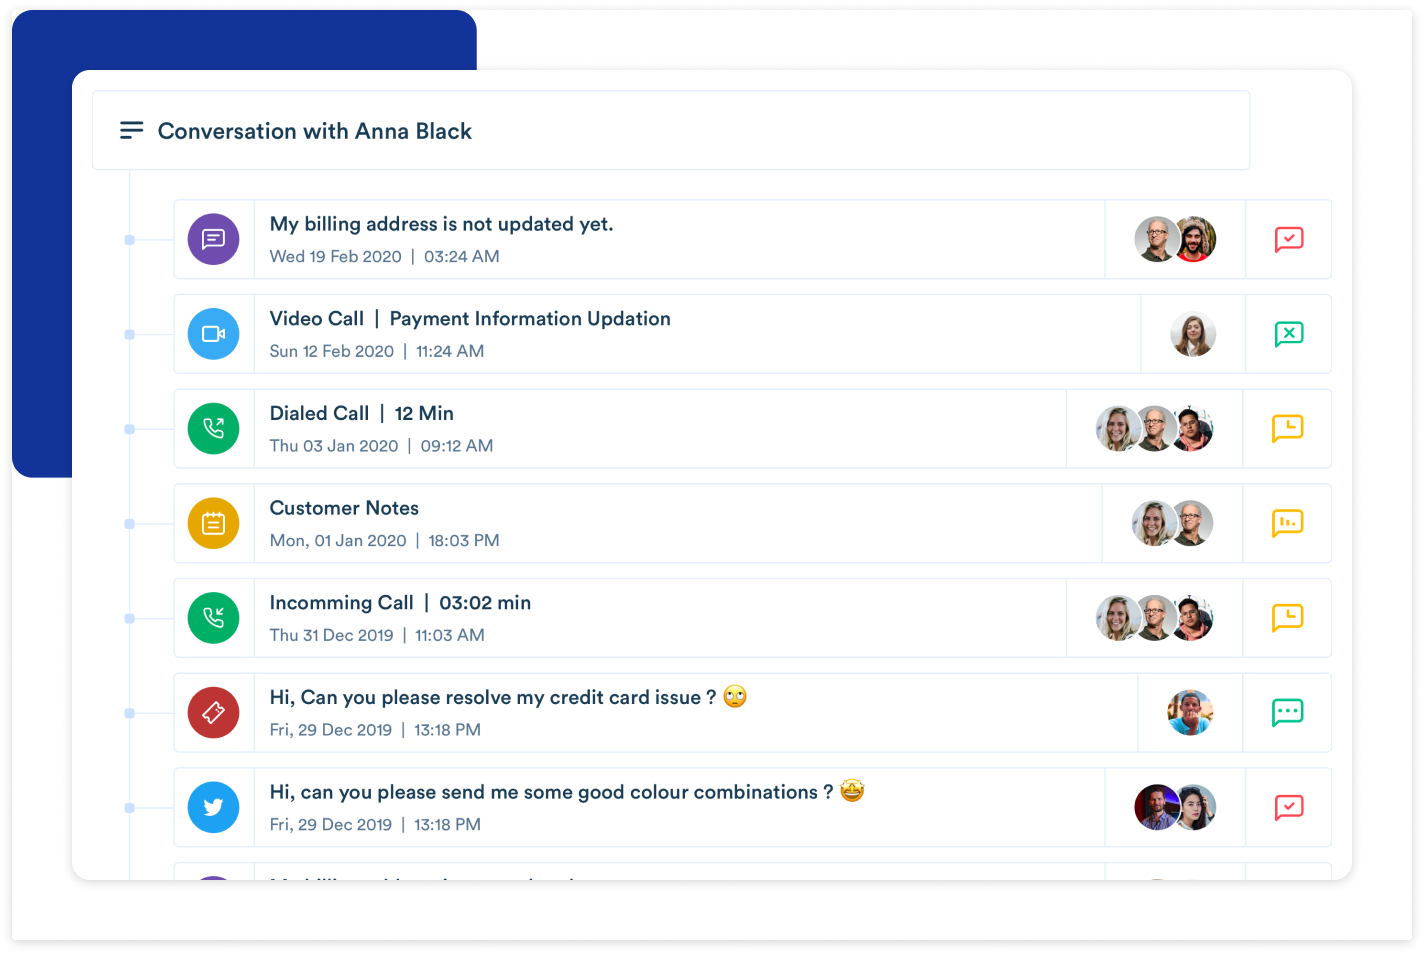 Continuous conversations with customers in a single thread